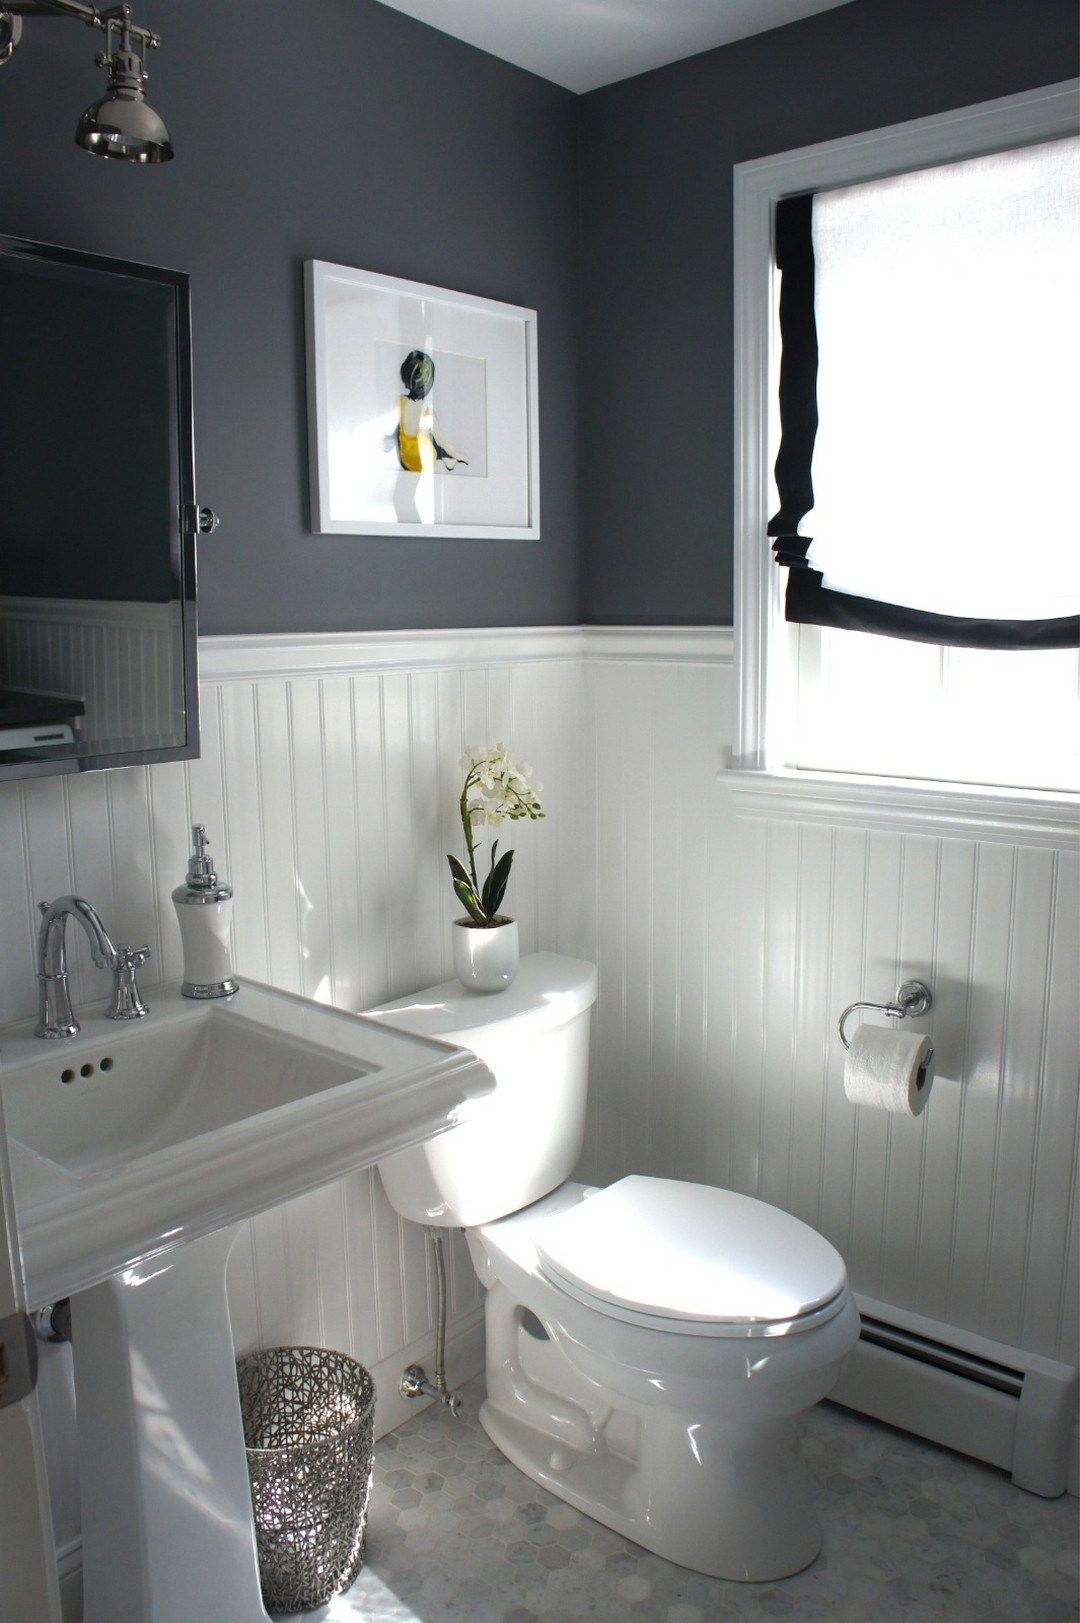 Bathroom Ideas On A Budget. Small Bathroom Makeovers Ideas On A Budget